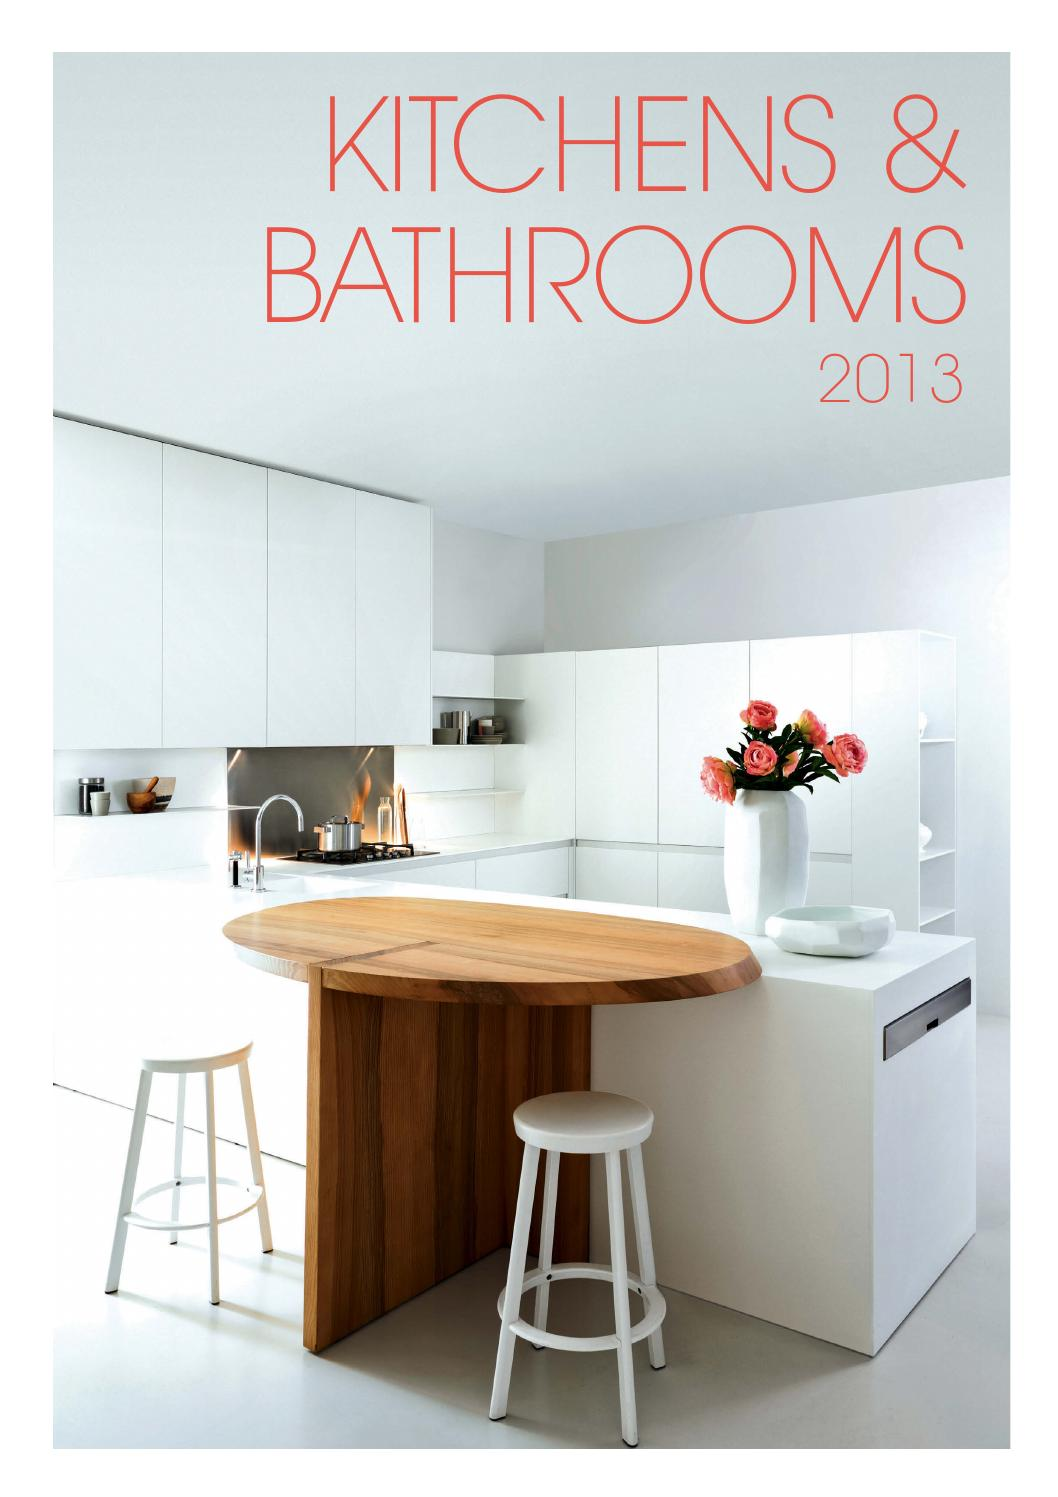 Kitchens & Bathrooms 2013 by Peebles Media Group - issuu